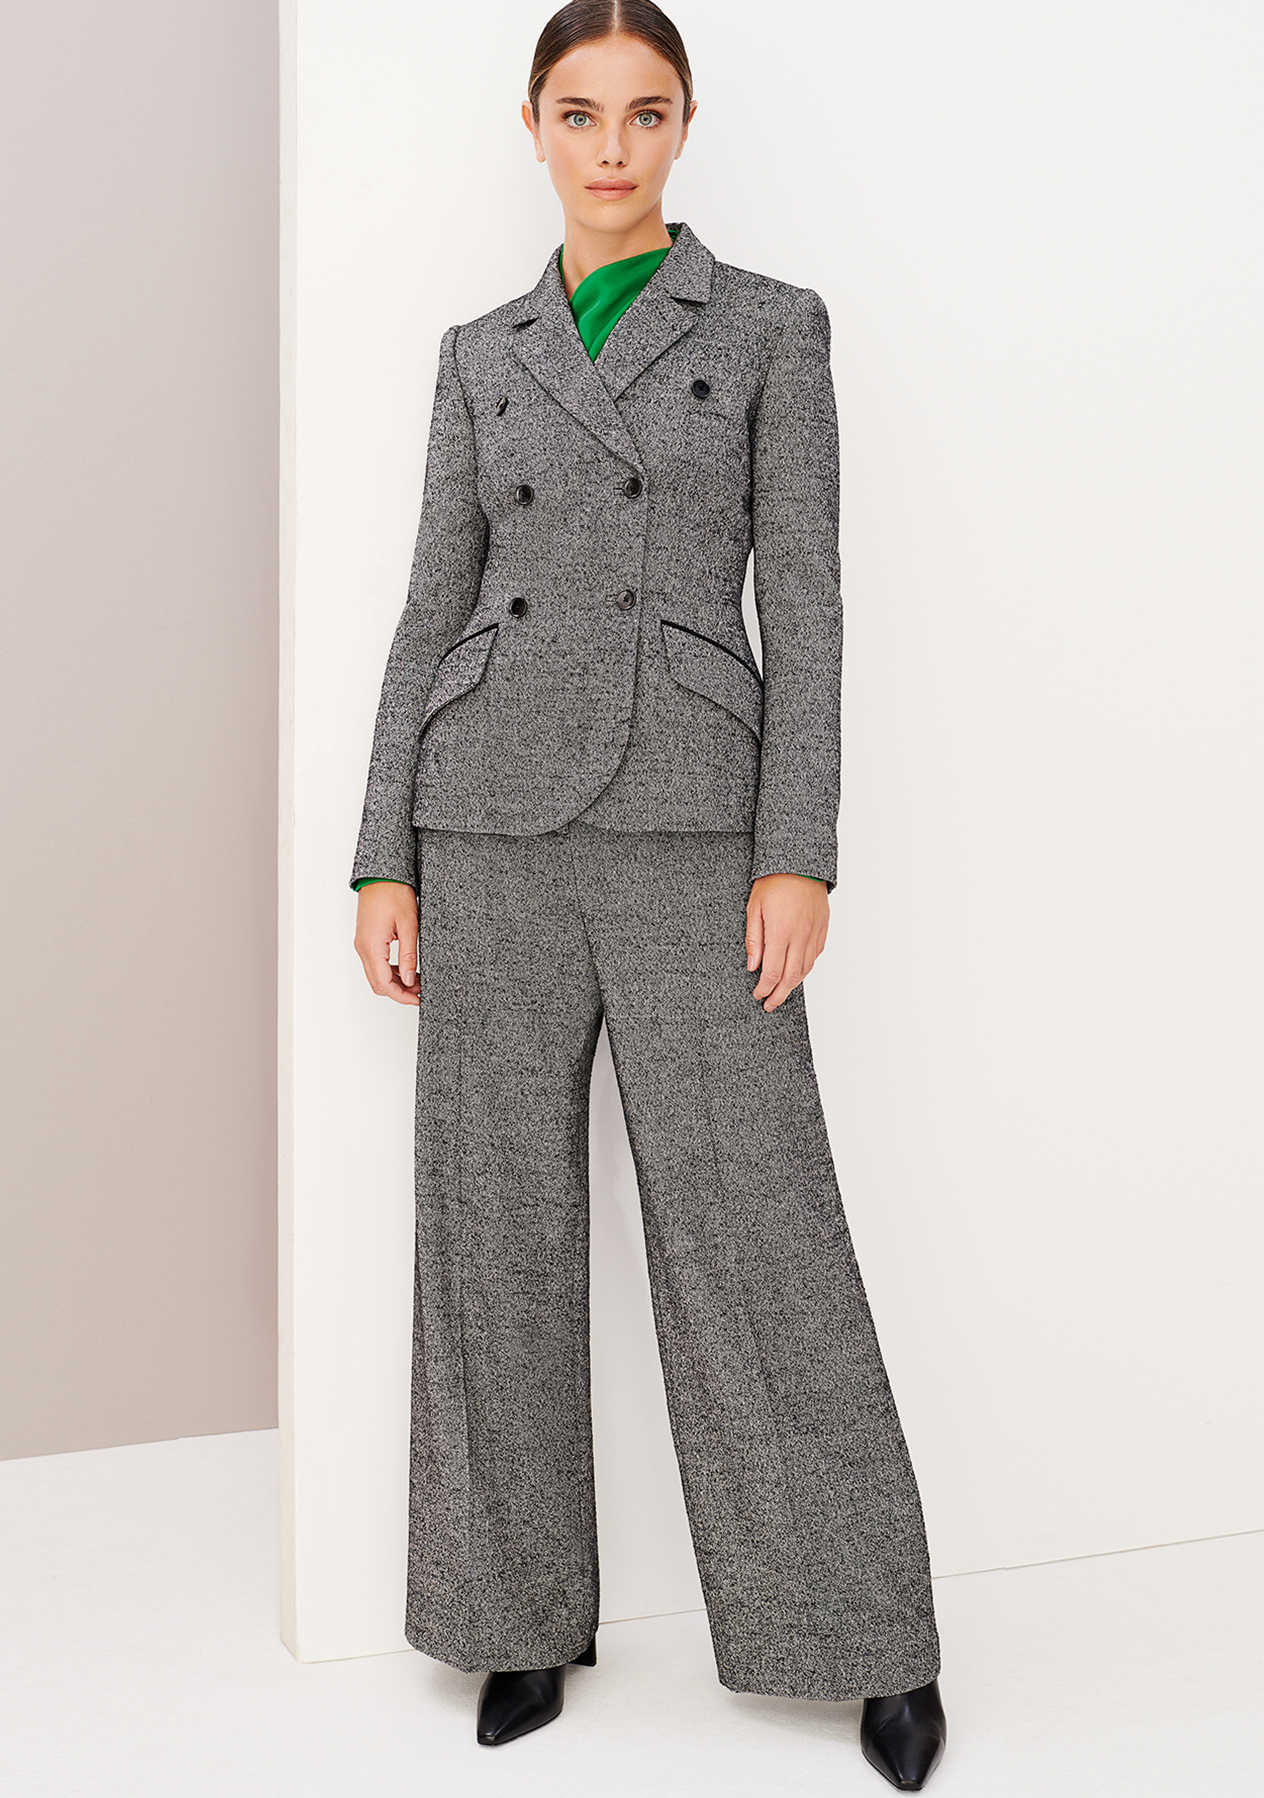 Hobbs London Grey Wool Wide Legged Suit with a jade green silk blouse.